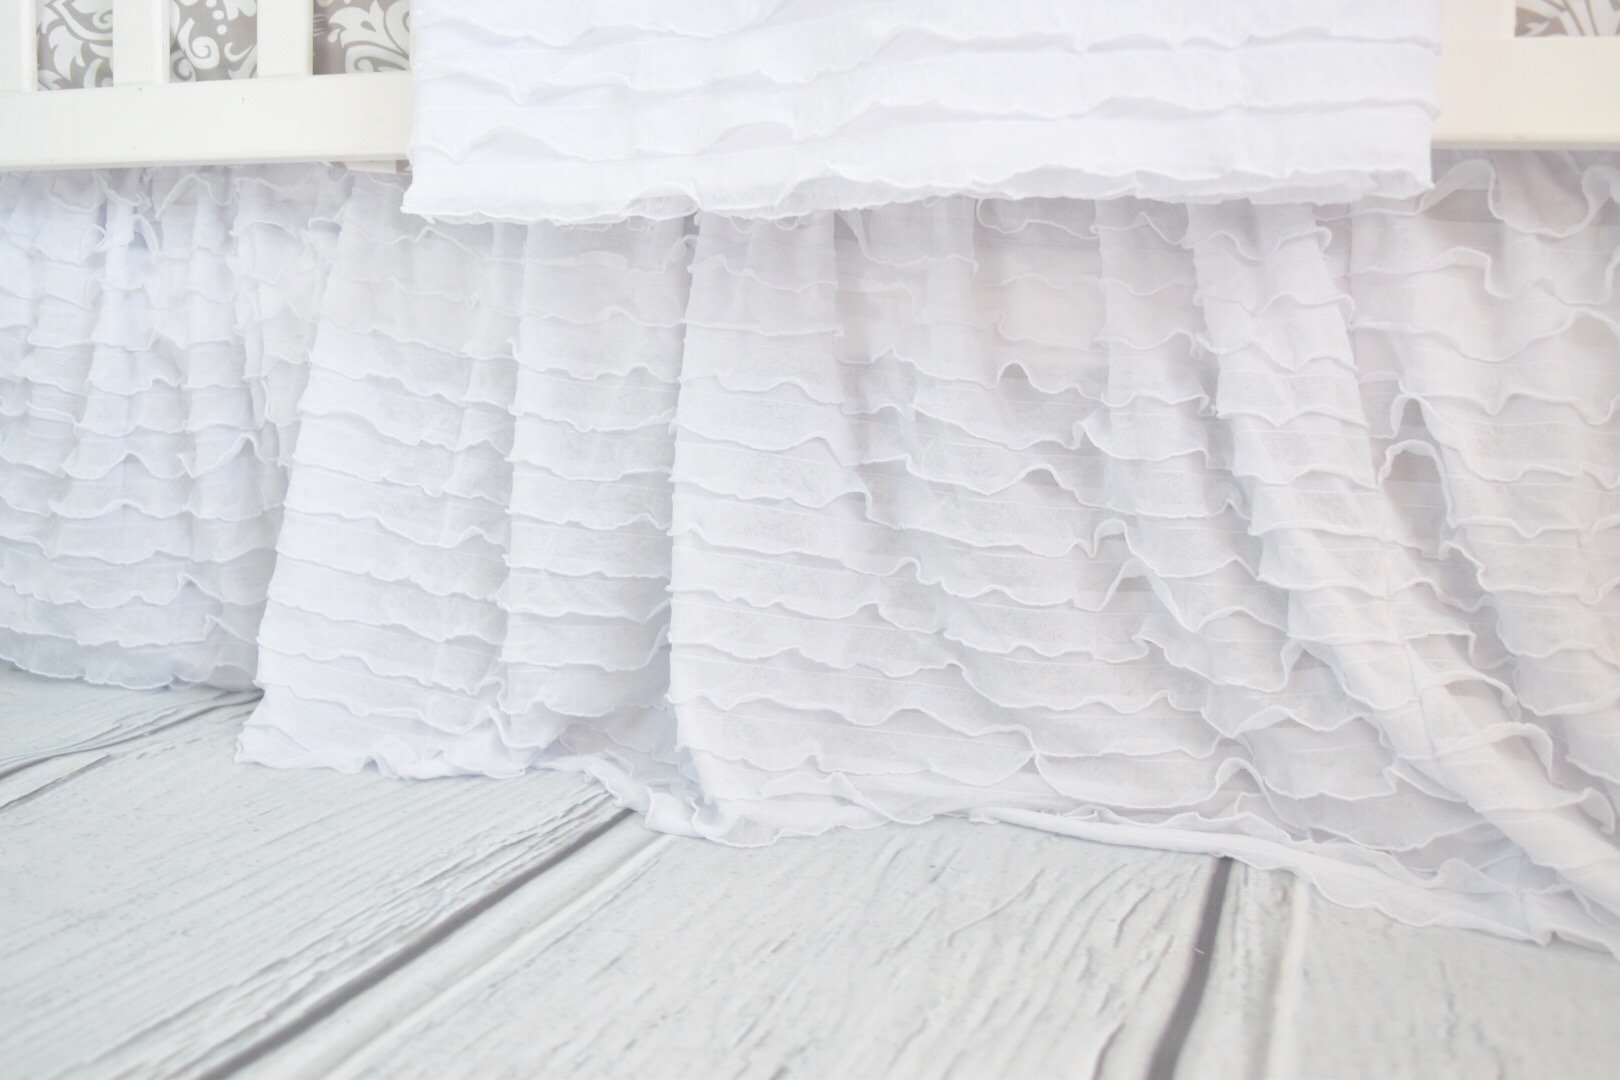 White Crib Skirt for Baby Girl Nursery Bedding Dust Ruffle by A Vision to Remember